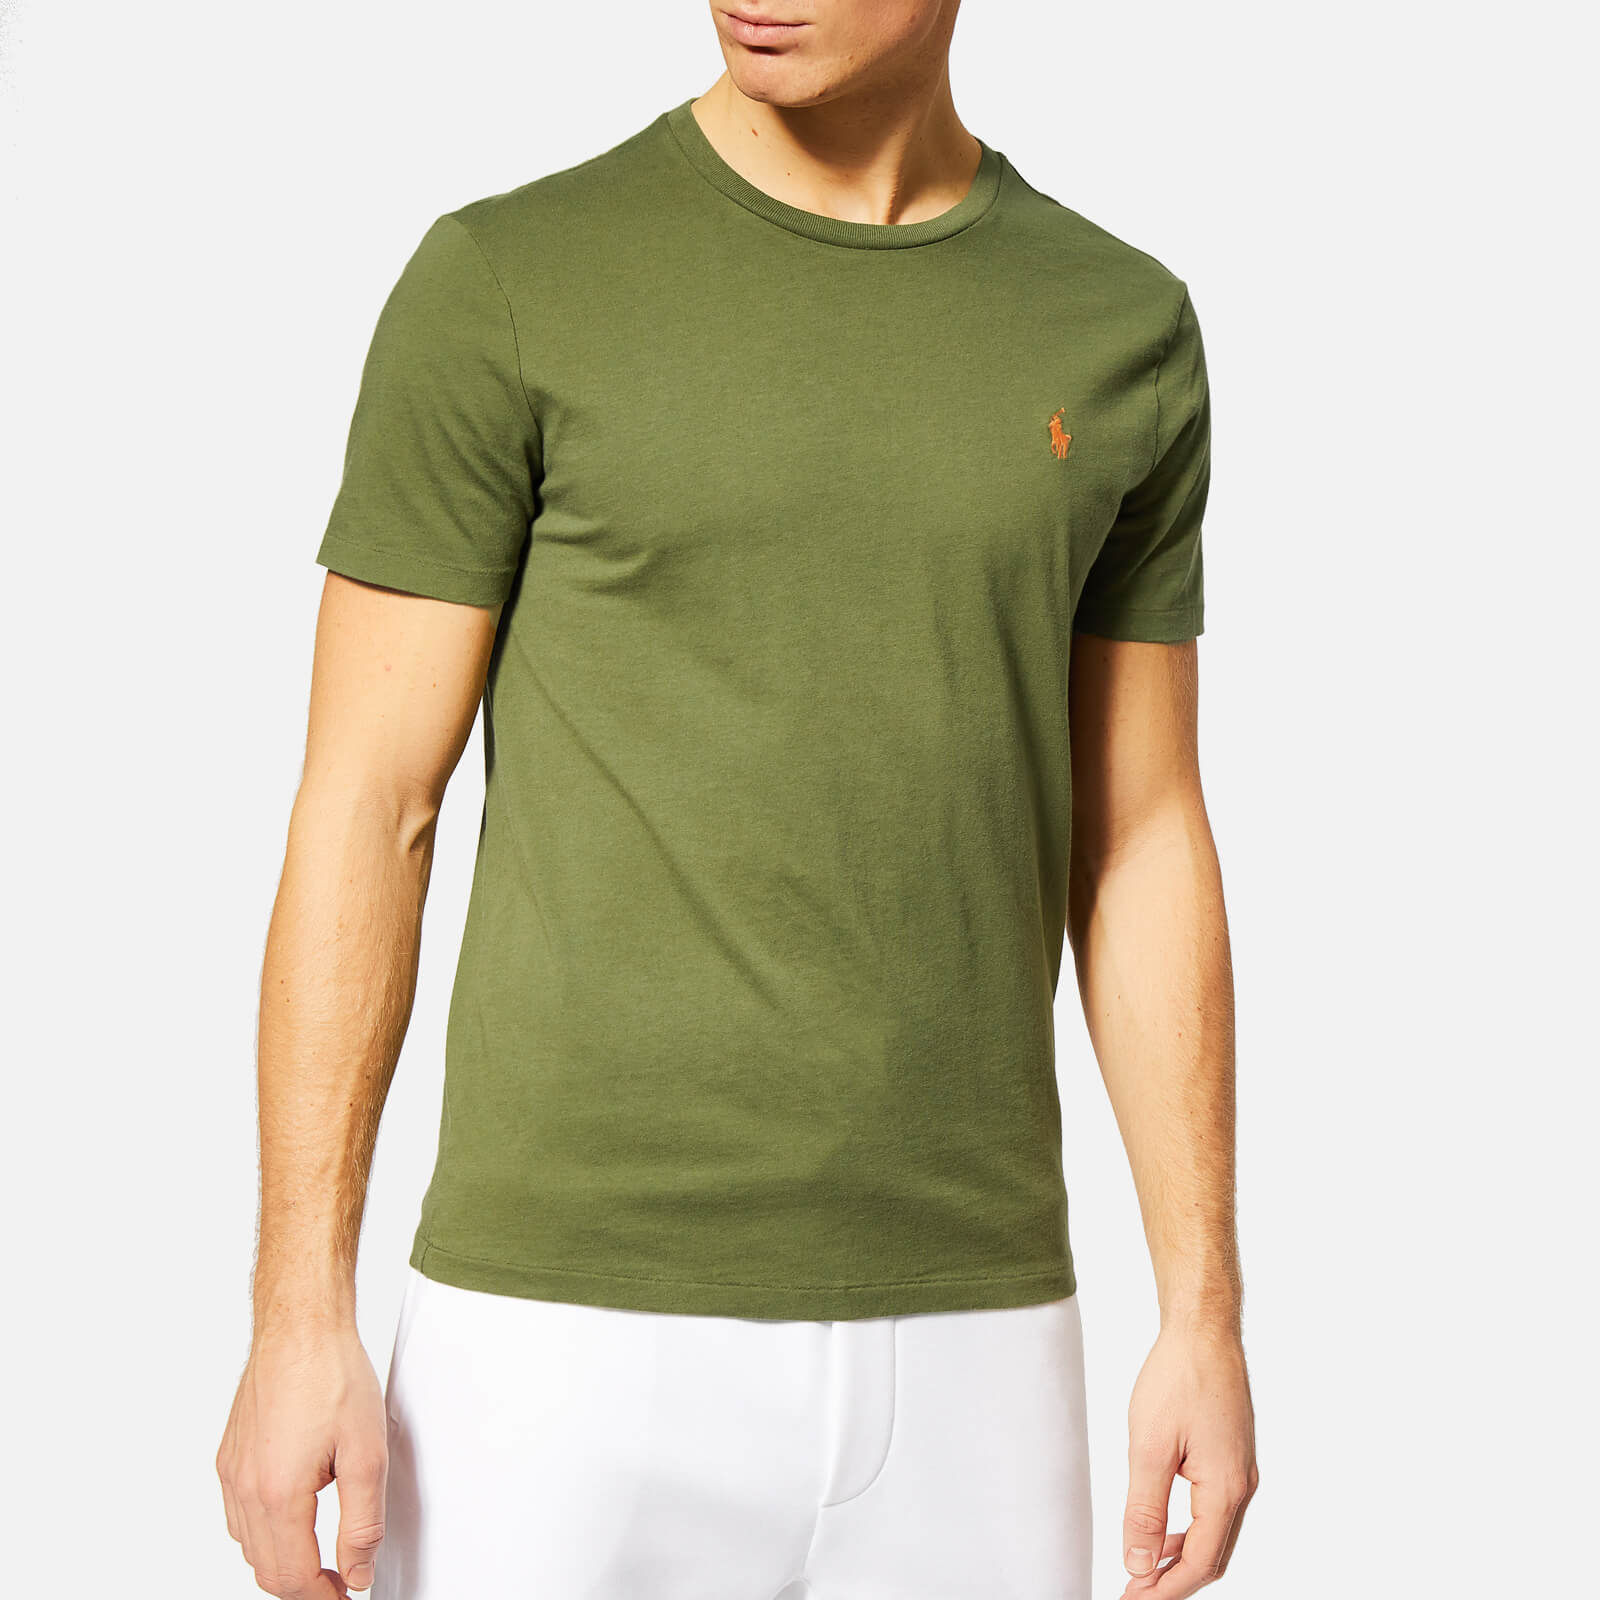 8062dc5e7 Polo Ralph Lauren Men s Custom Slim Fit Crew Neck T-Shirt - Supply Olive -  Free UK Delivery over £50